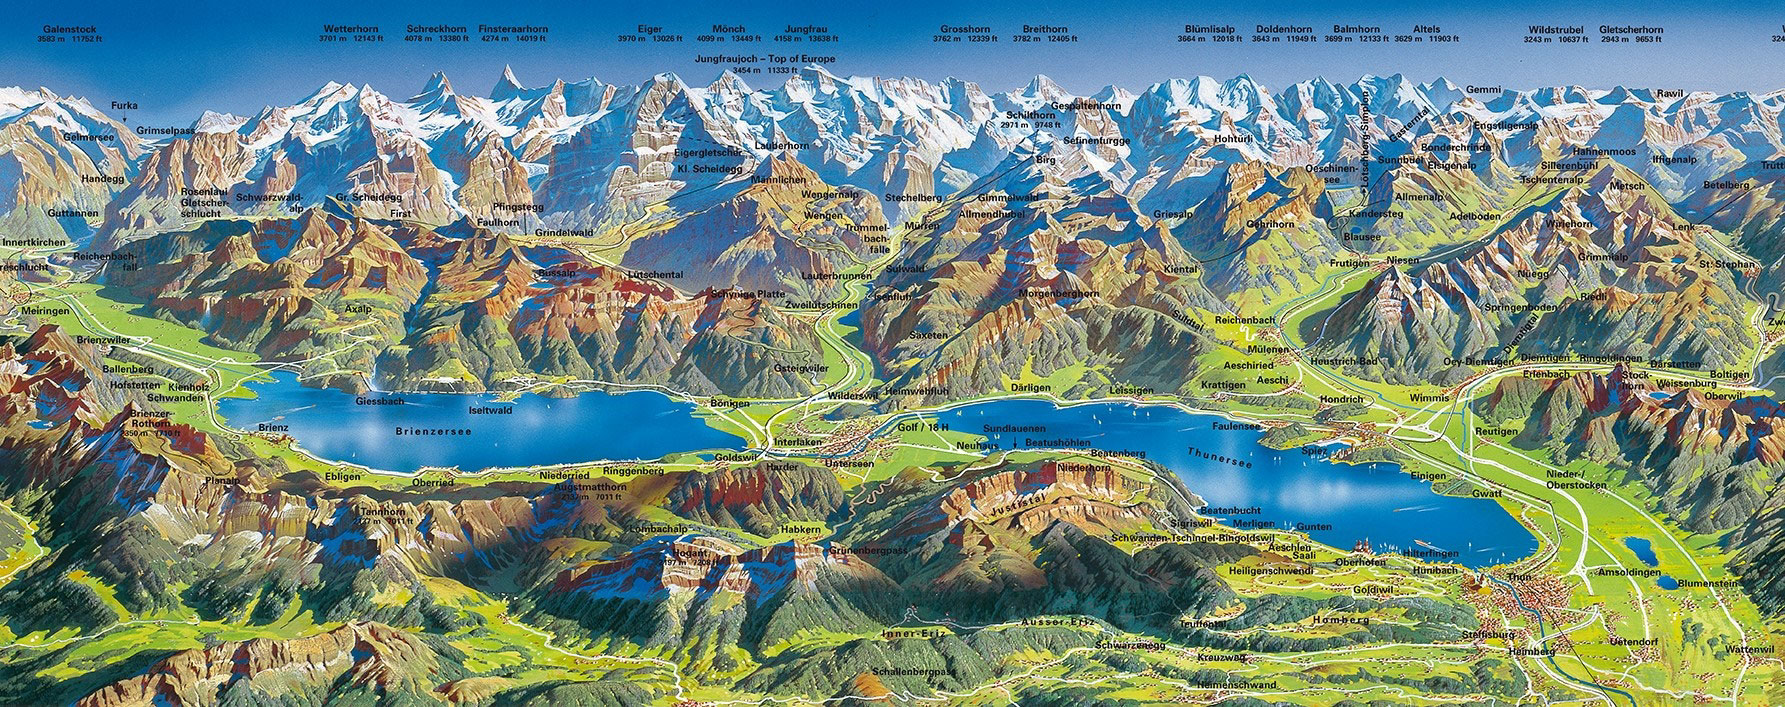 Bernese Oberland map